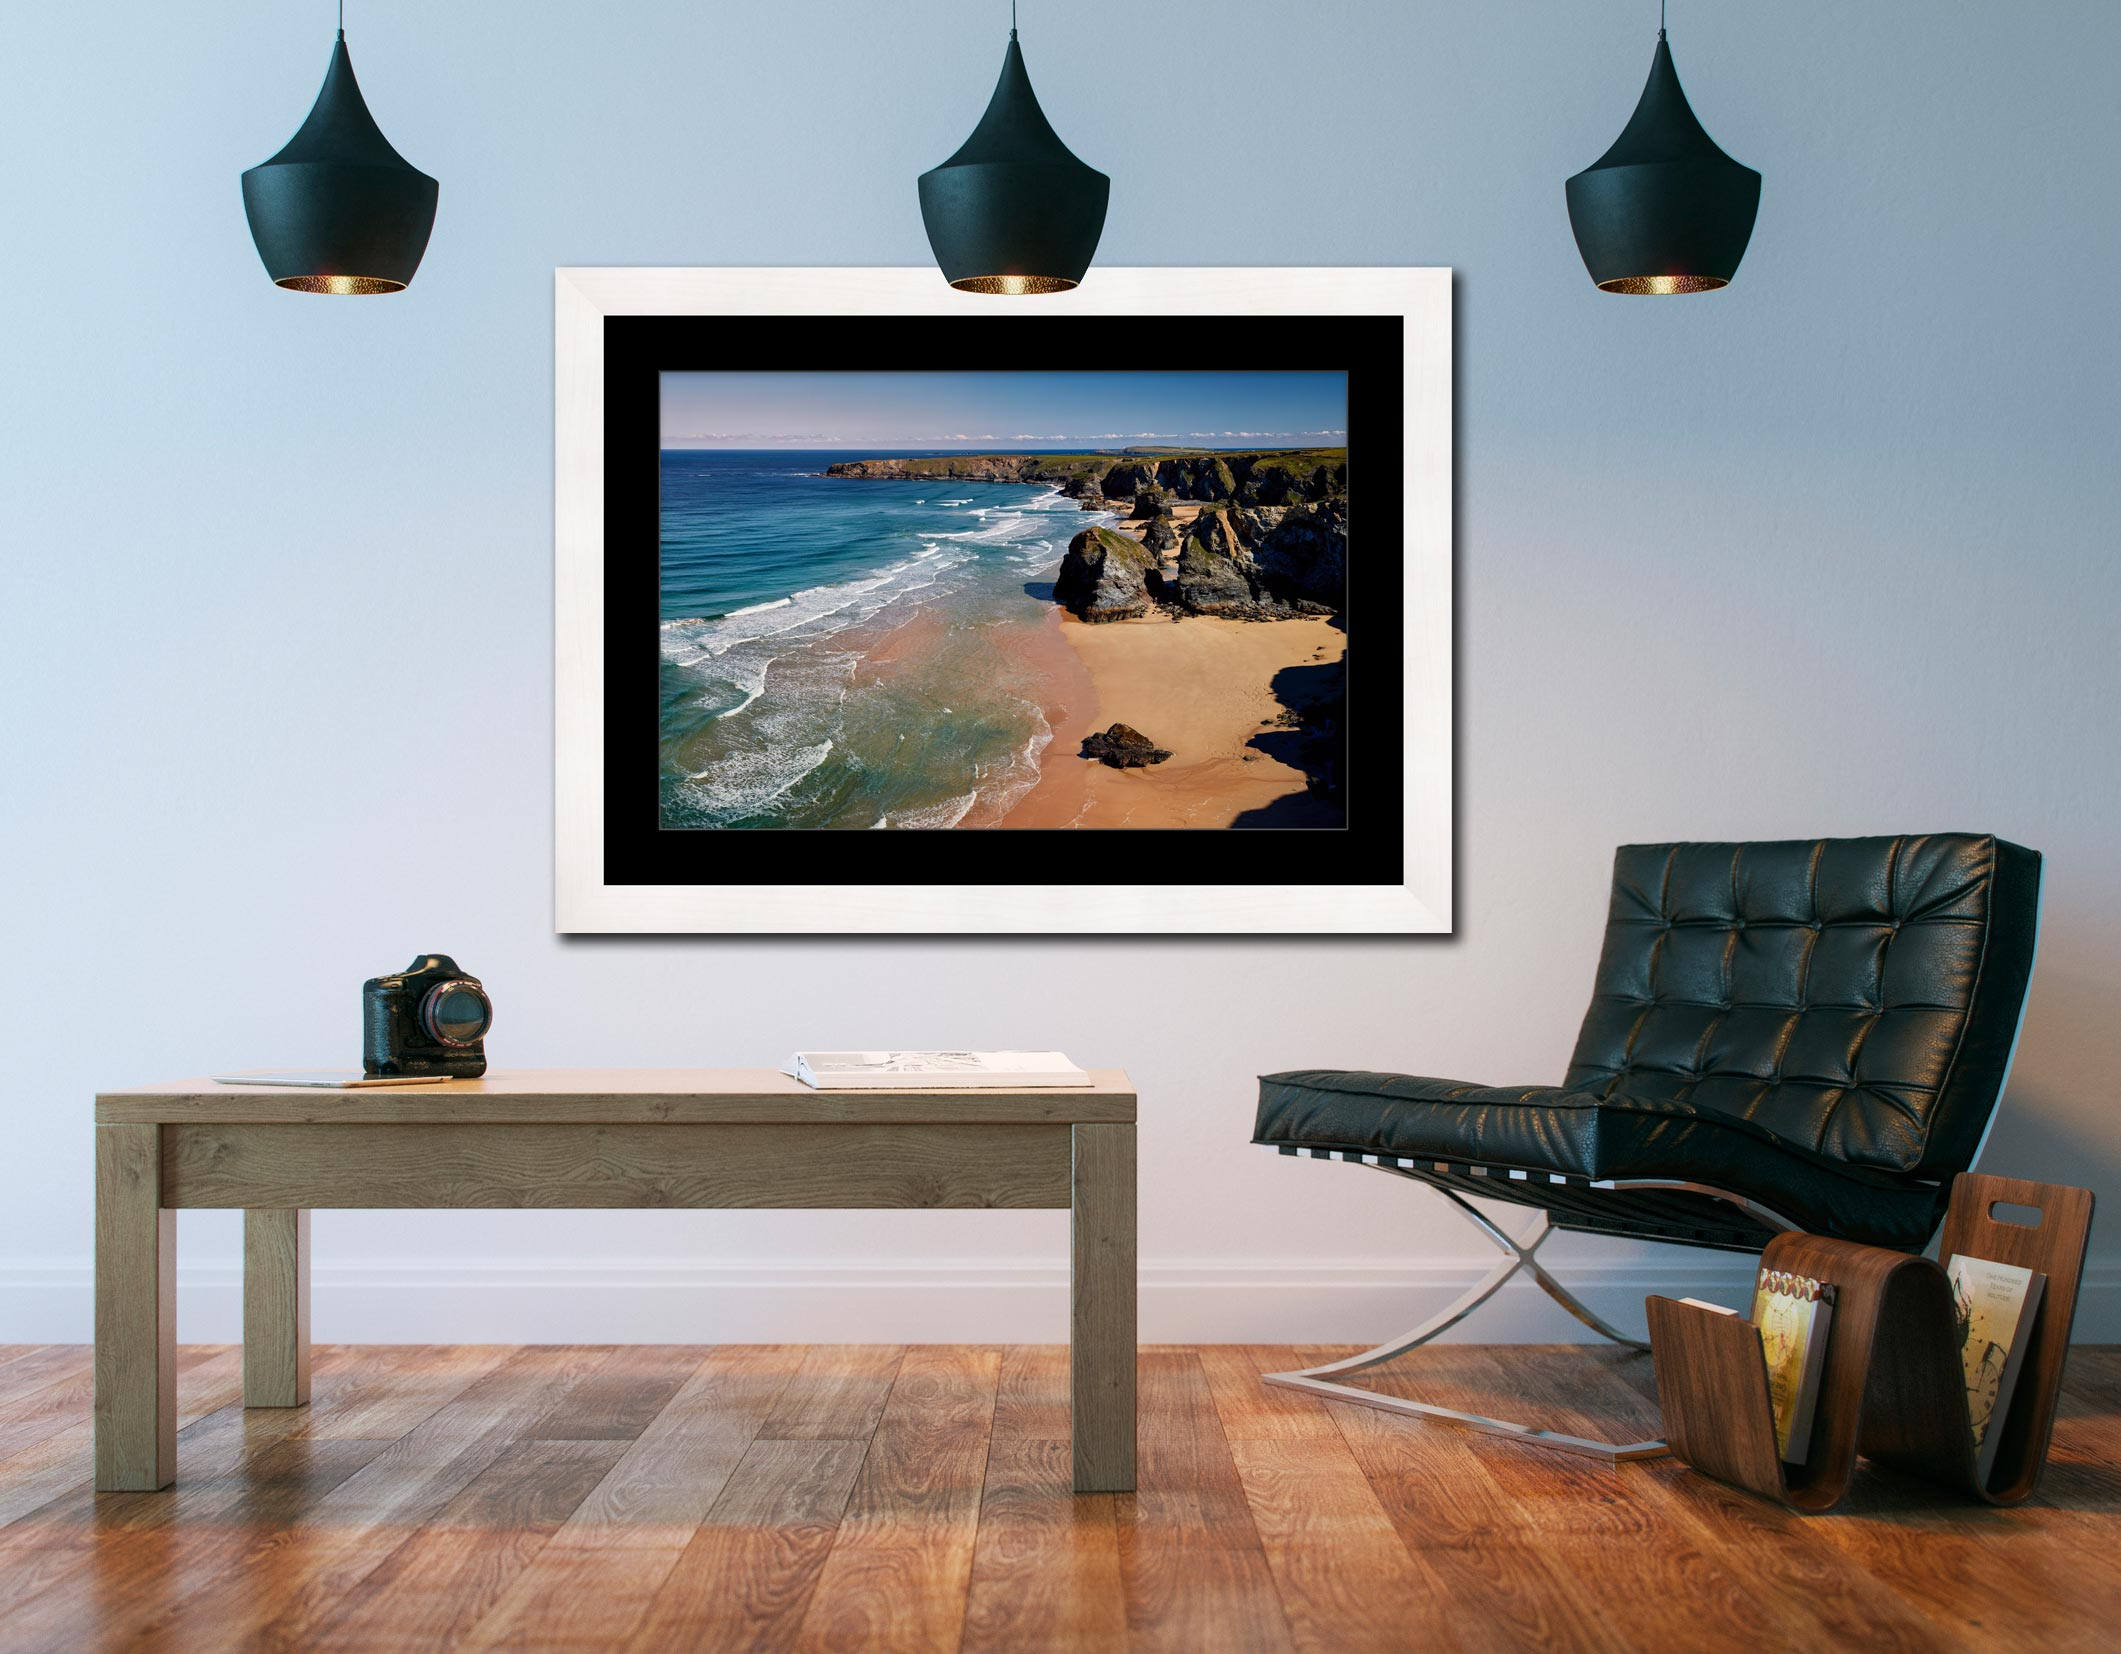 Green Ocean at Bedruthan – Framed Print with Mount on Wall